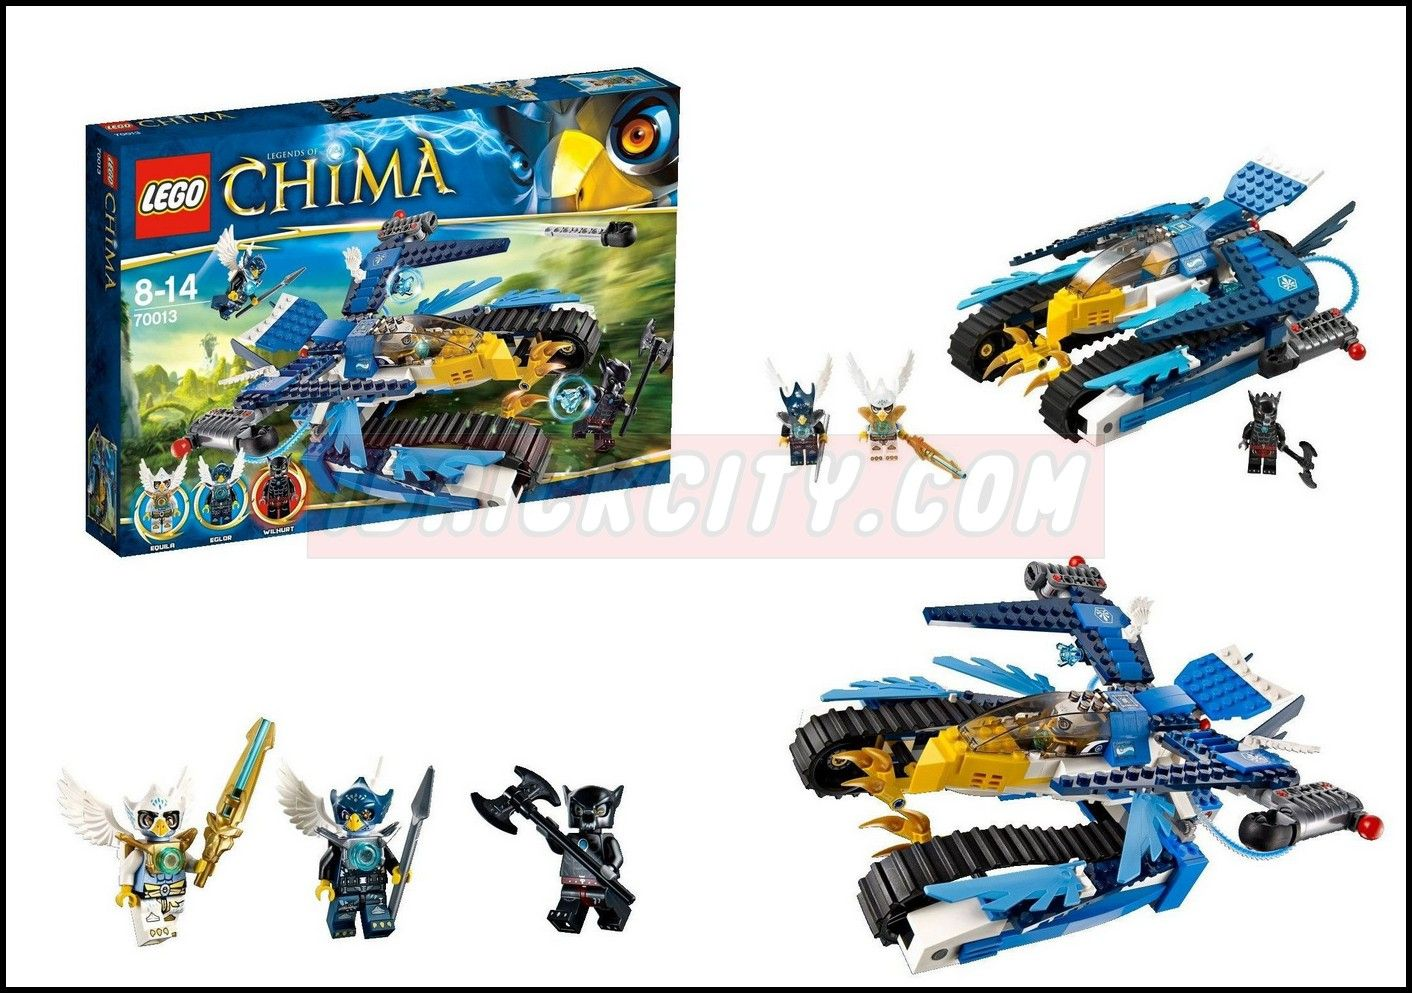 Lego 70013 Legends of Chima Equila Ultra Striker ibrickcity 6 1024x720